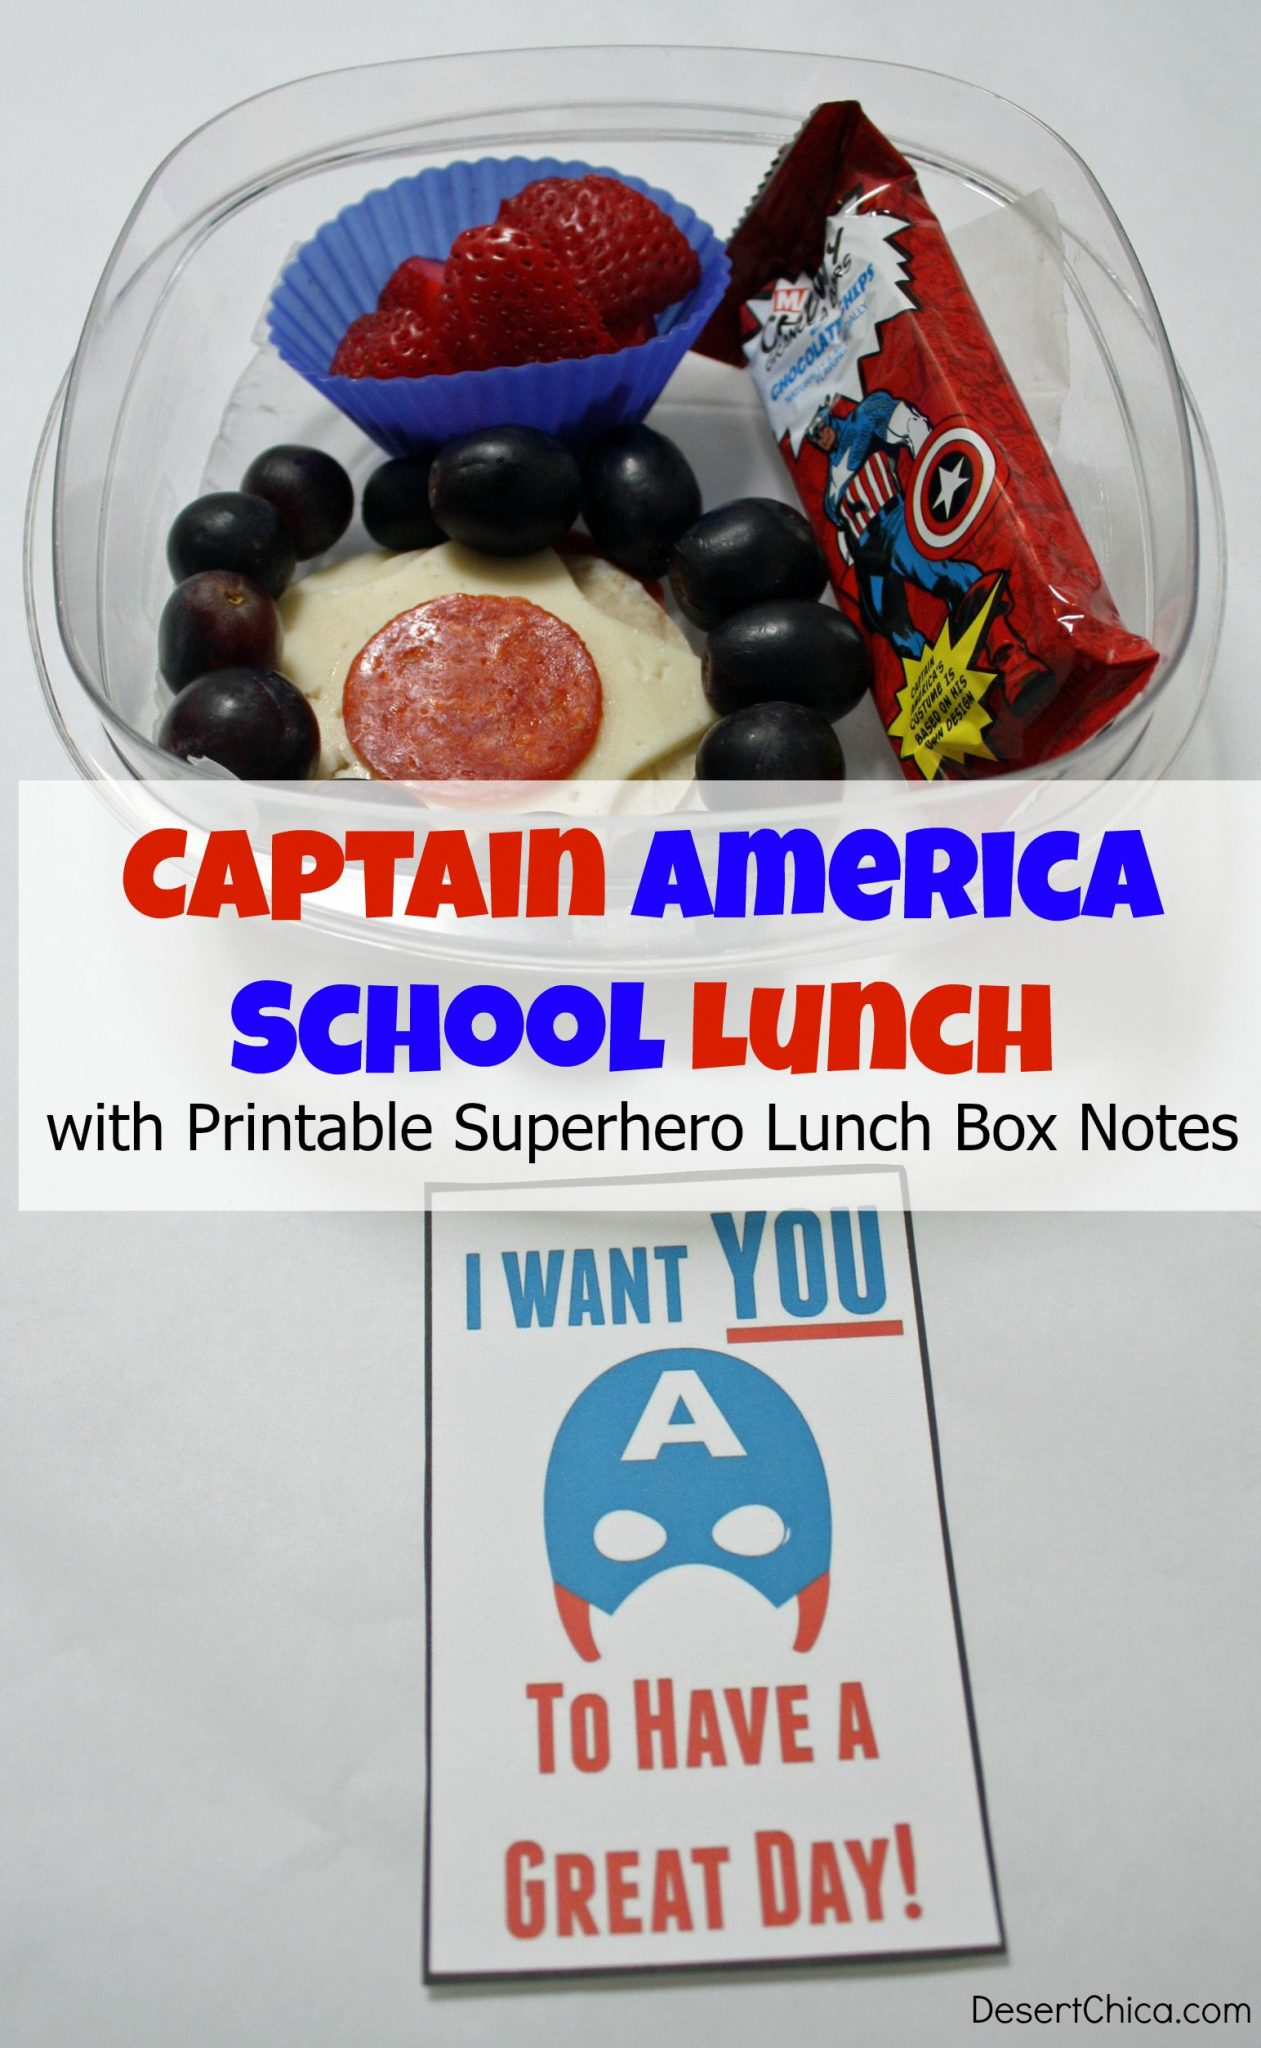 Captain America School Lunch with printable superhero lunch box notes